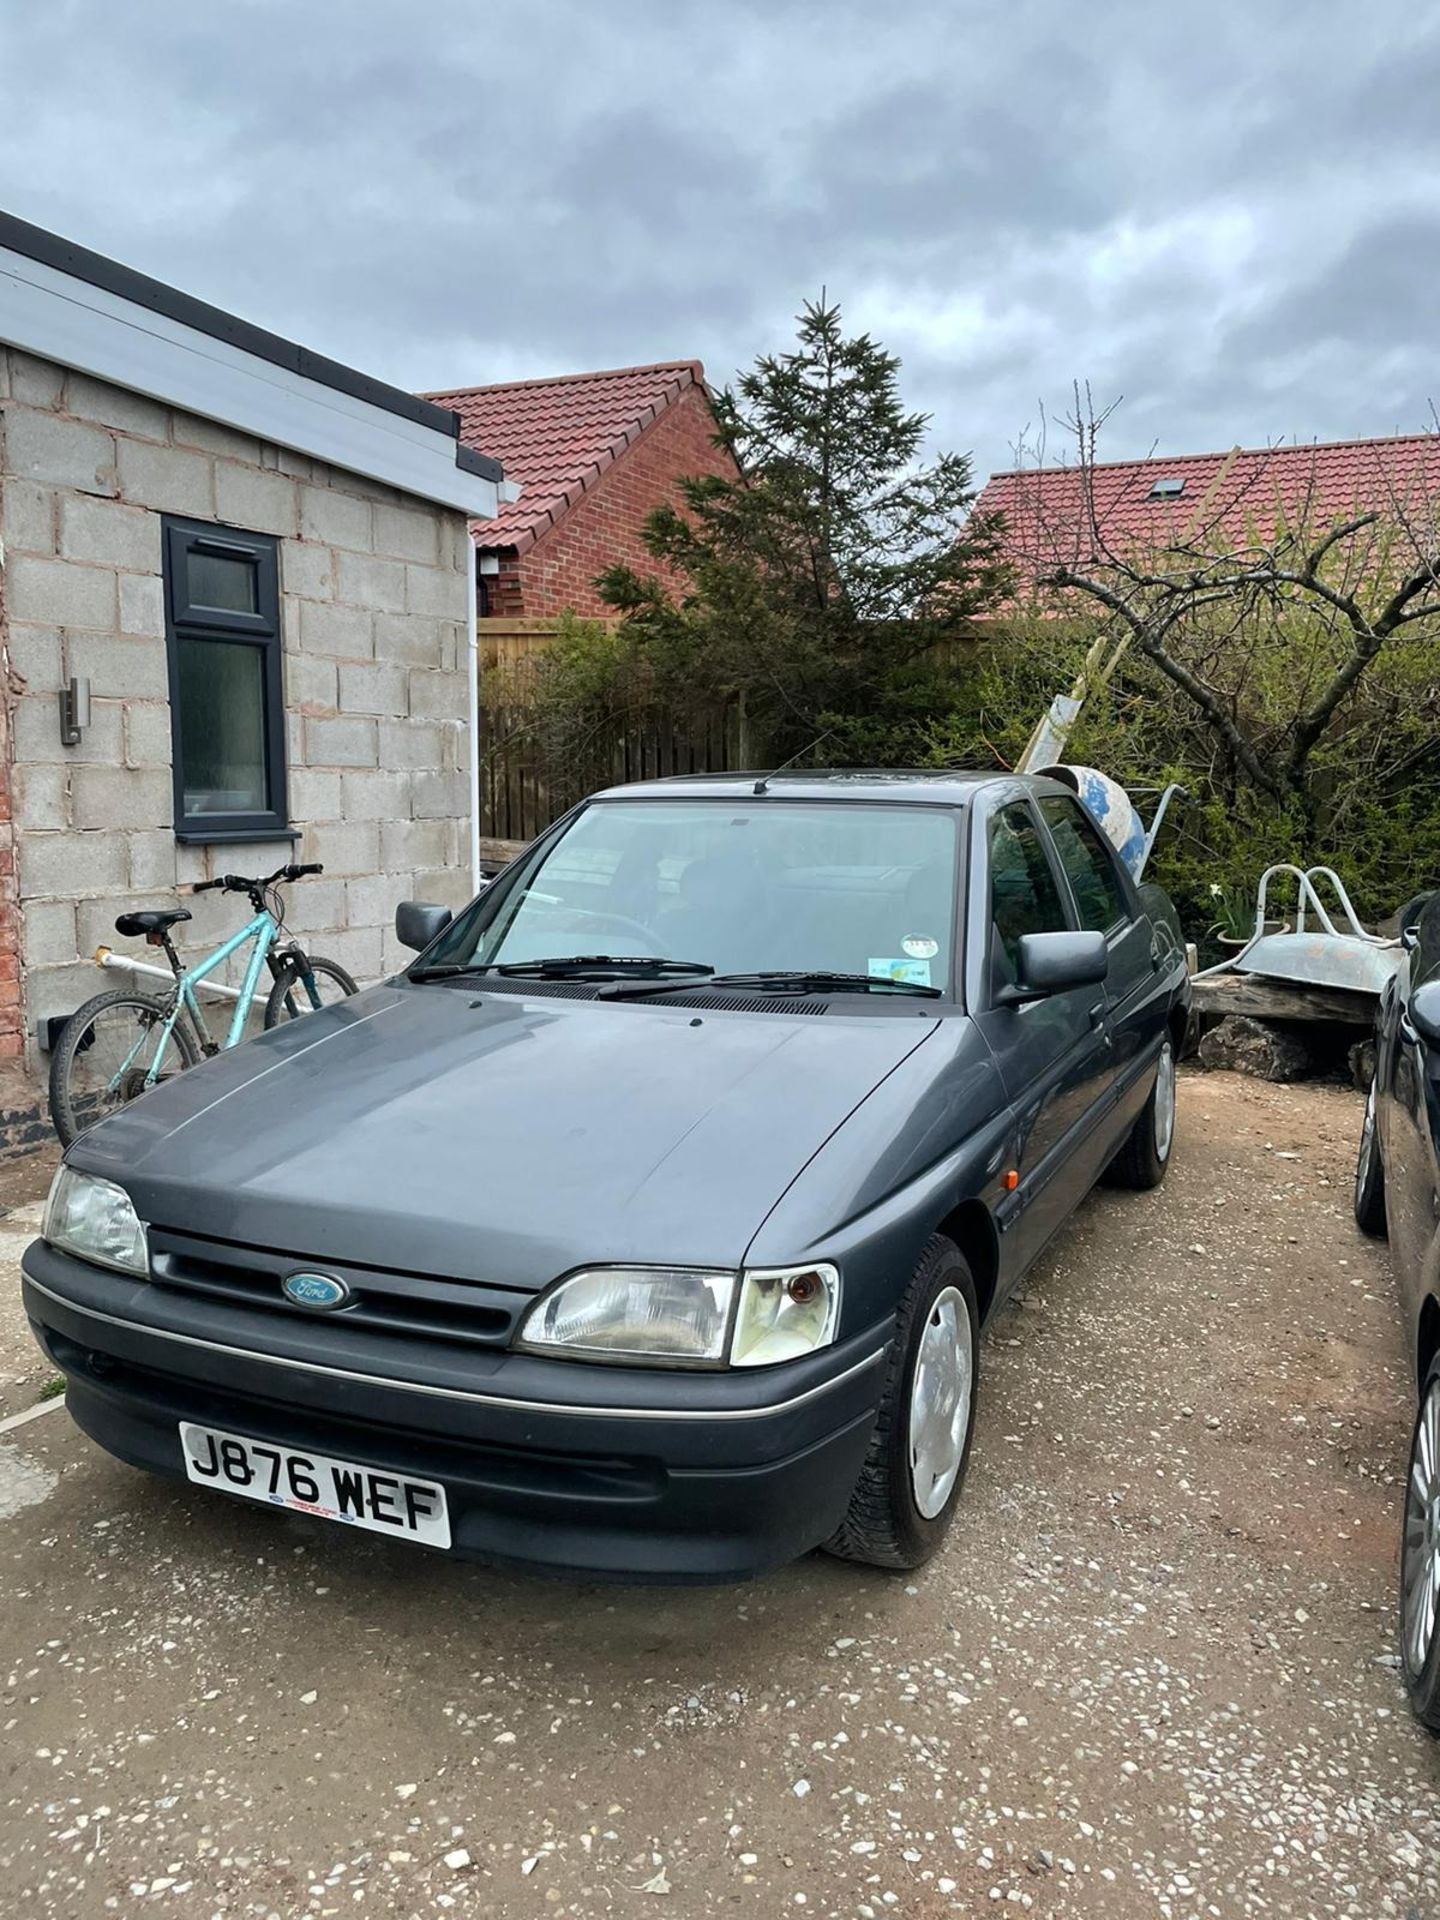 1992 FORD ORION LX AUTO, GREY, PETROL, AUTO VARIABLE 1 GEARS, 4 PREVIOUS KEEPERS, NO VAT - Image 3 of 8